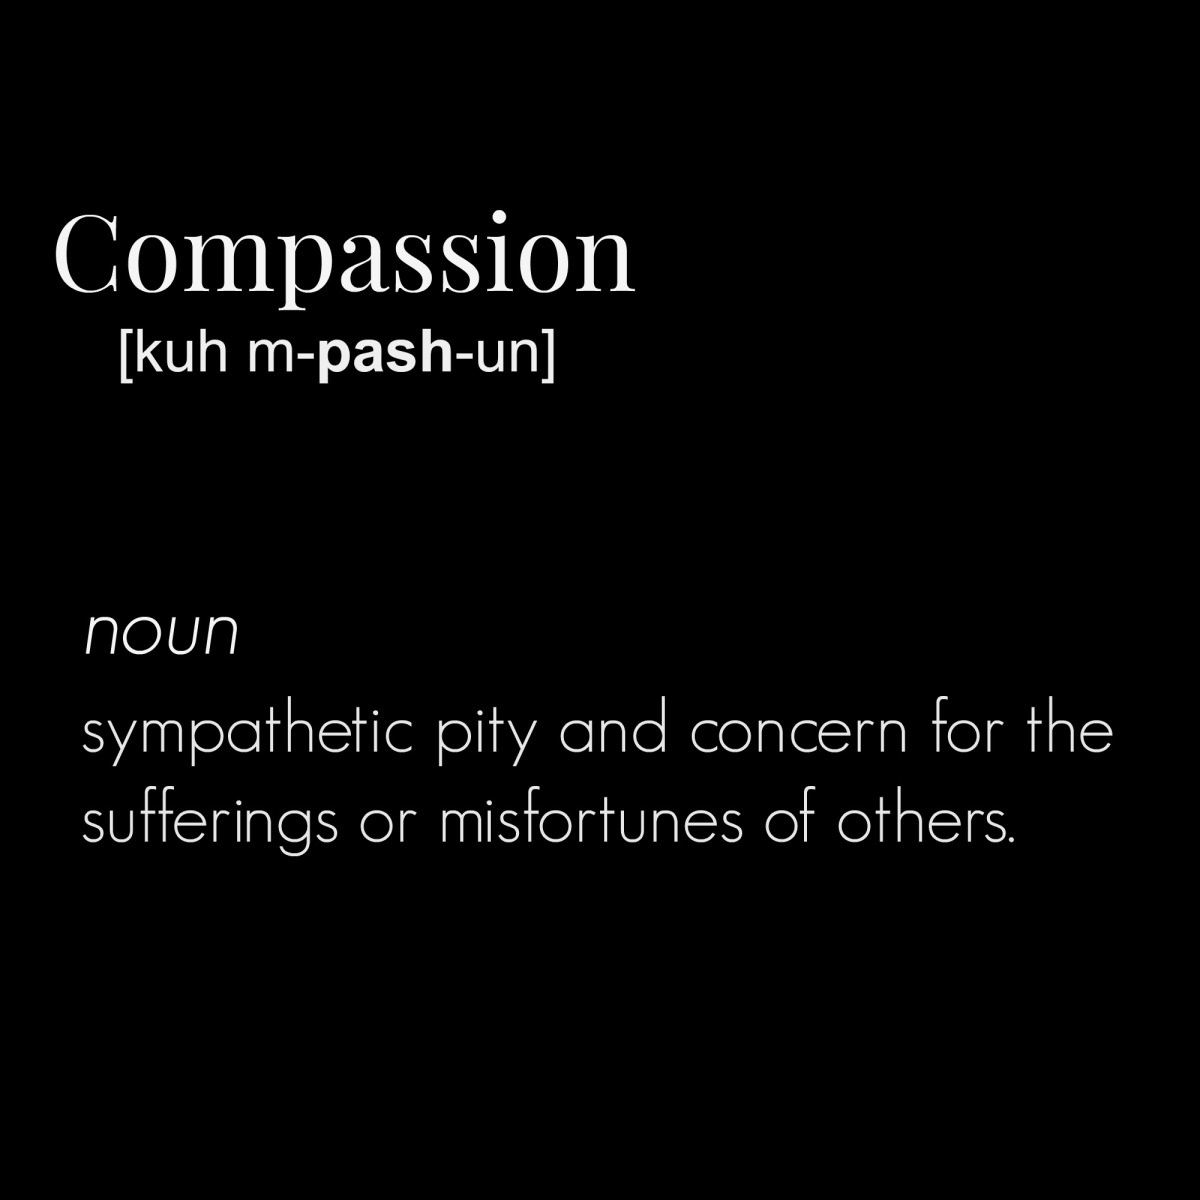 compassion definition essay writersgroup749 web fc2 com compassion definition essay